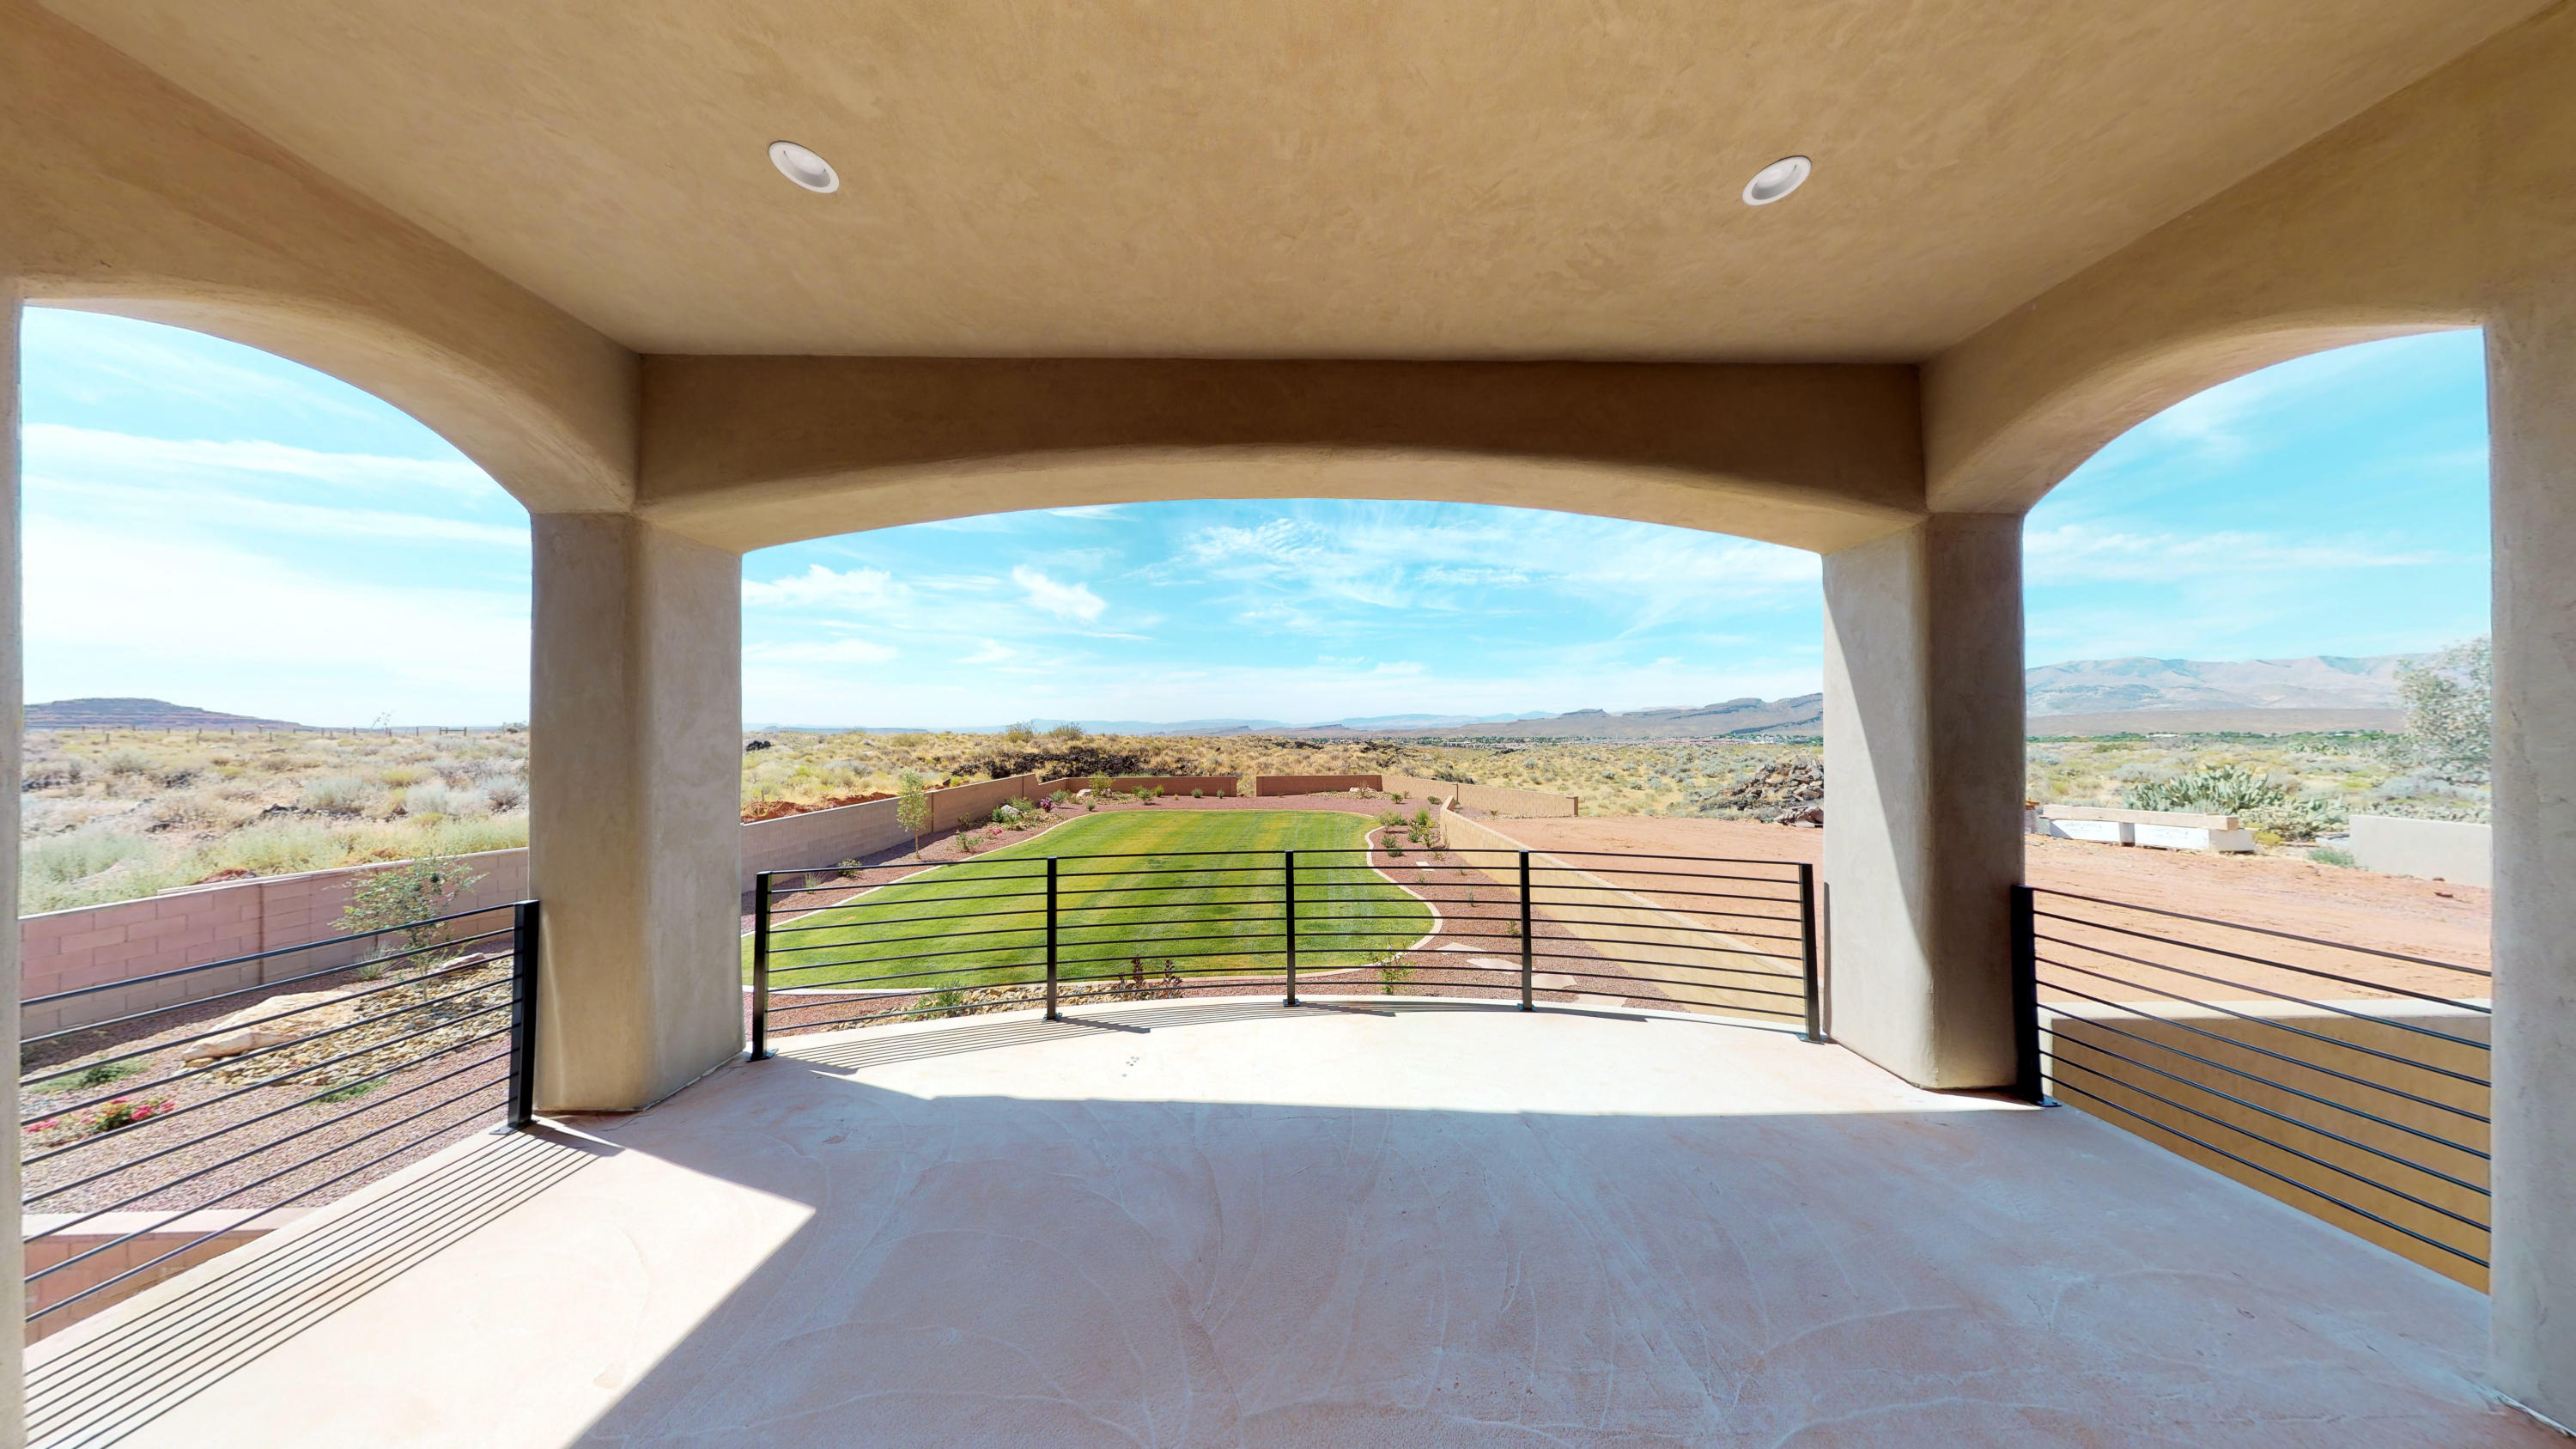 Horse property in Ivins!!! Breathtaking views from every angle of this Ivins property. Luxury and privacy are found inside and outside on this custom home. 5 bedrooms, 5.5 bathrooms, theater room, amazing backyard, 3 car garage and spacious driveway. This property has a casita for your guests with its own entrance. This is a MUST see home!